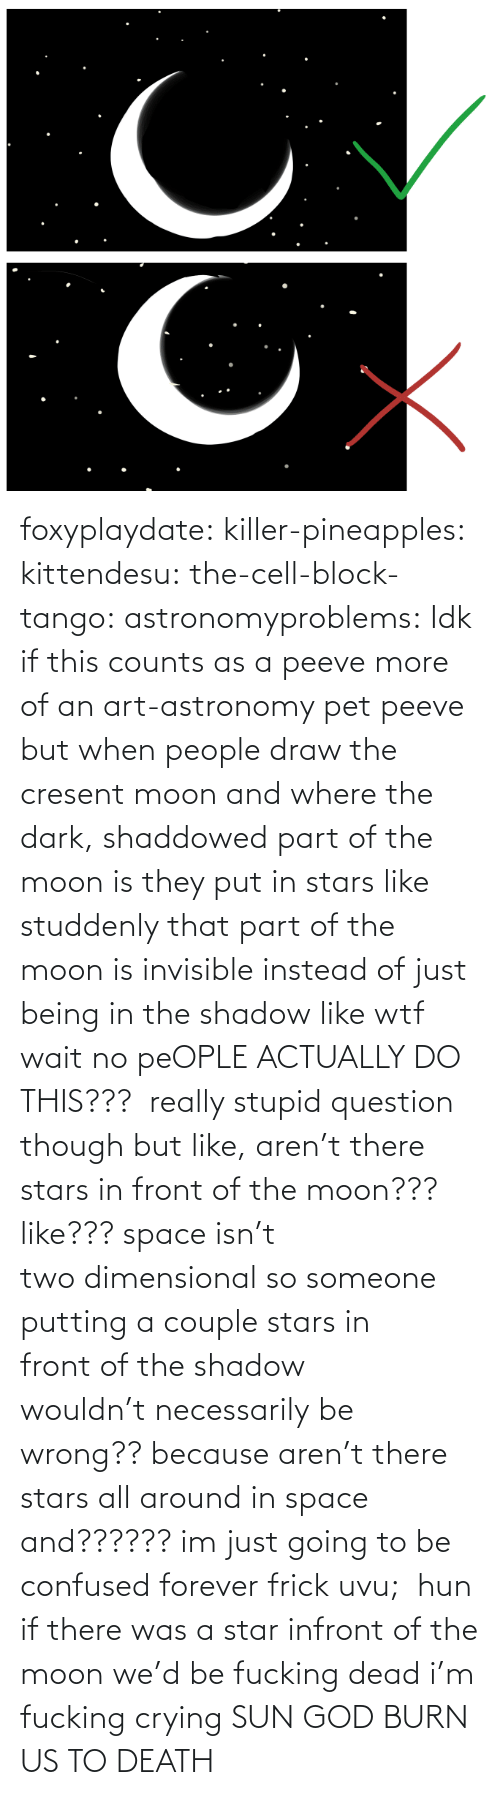 putting: foxyplaydate: killer-pineapples:  kittendesu:  the-cell-block-tango:  astronomyproblems:  Idk if this counts as a peeve more of an art-astronomy pet peeve but when people draw the cresent moon and where the dark, shaddowed part of the moon is they put in stars like studdenly that part of the moon is invisible instead of just being in the shadow like wtf  wait no peOPLE ACTUALLY DO THIS???   really stupid question though but like, aren't there stars in front of the moon??? like??? space isn't two dimensional so someone putting a couple stars in front of the shadow wouldn't necessarily be wrong?? because aren't there stars all around in space and?????? im just going to be confused forever frick uvu;   hun if there was a star infront of the moon we'd be fucking dead  i'm fucking crying    SUN GOD BURN US TO DEATH